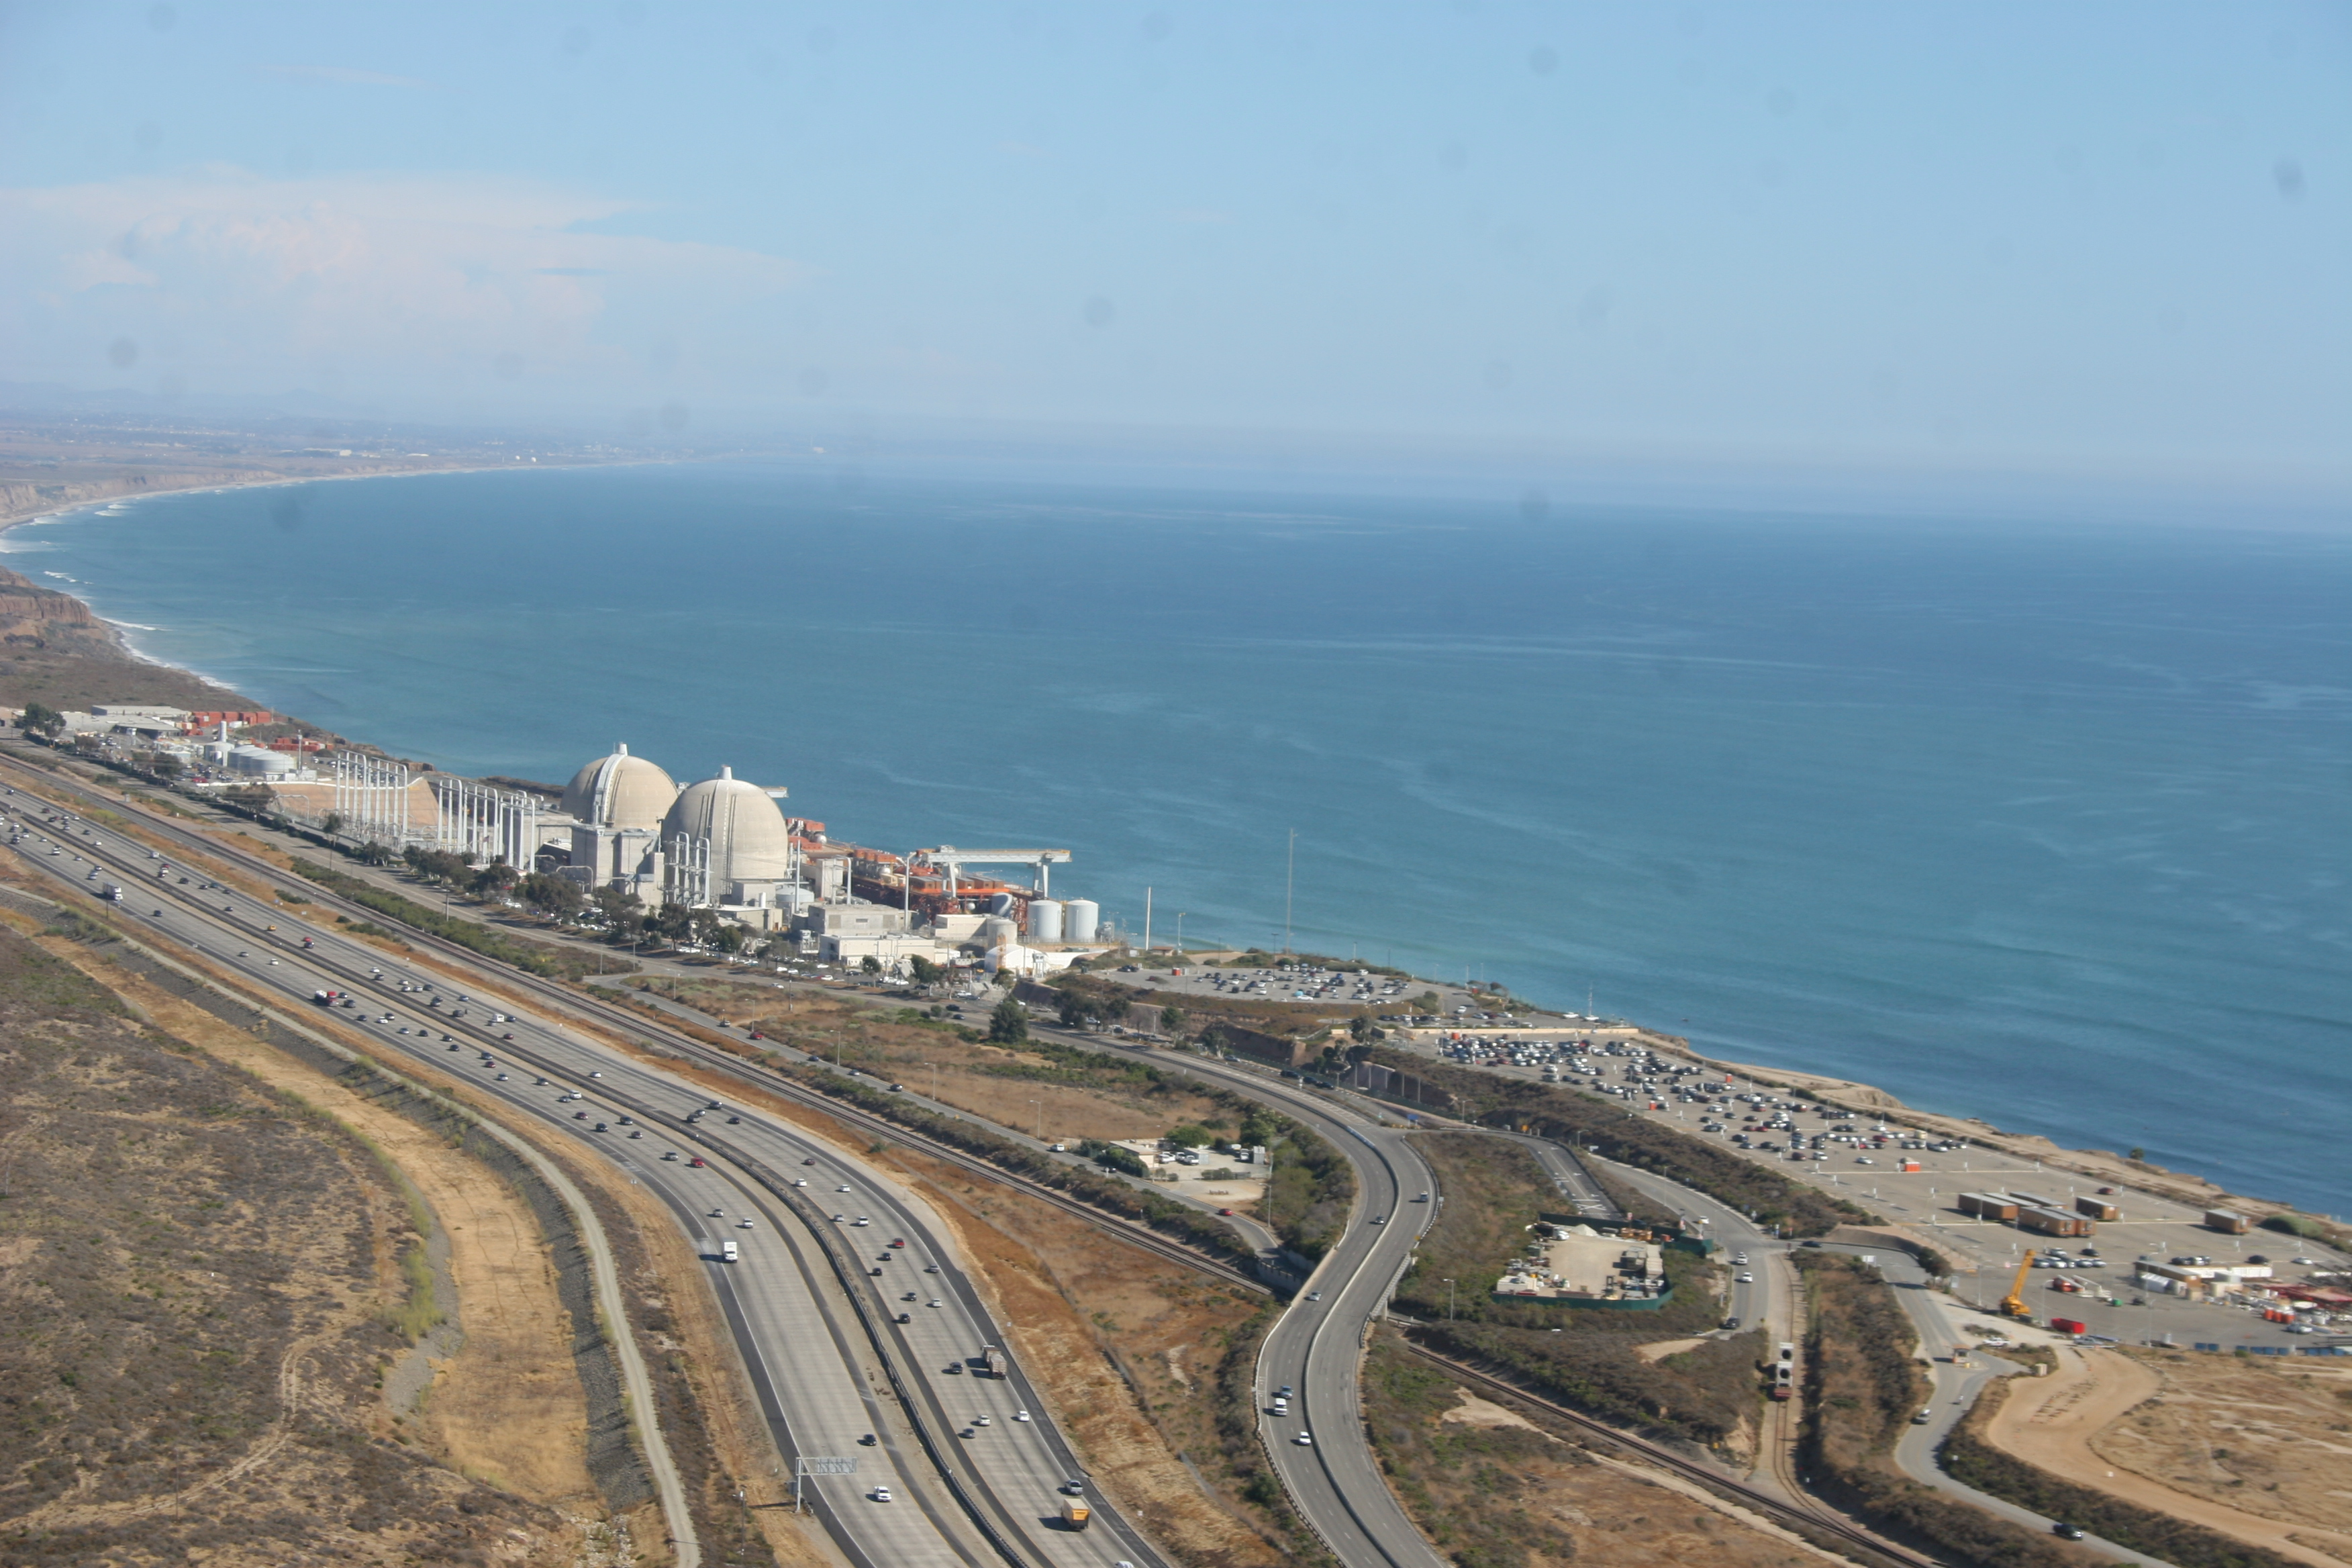 An aerial view of the San Onofre Nuclear Generating Station. Photo: File